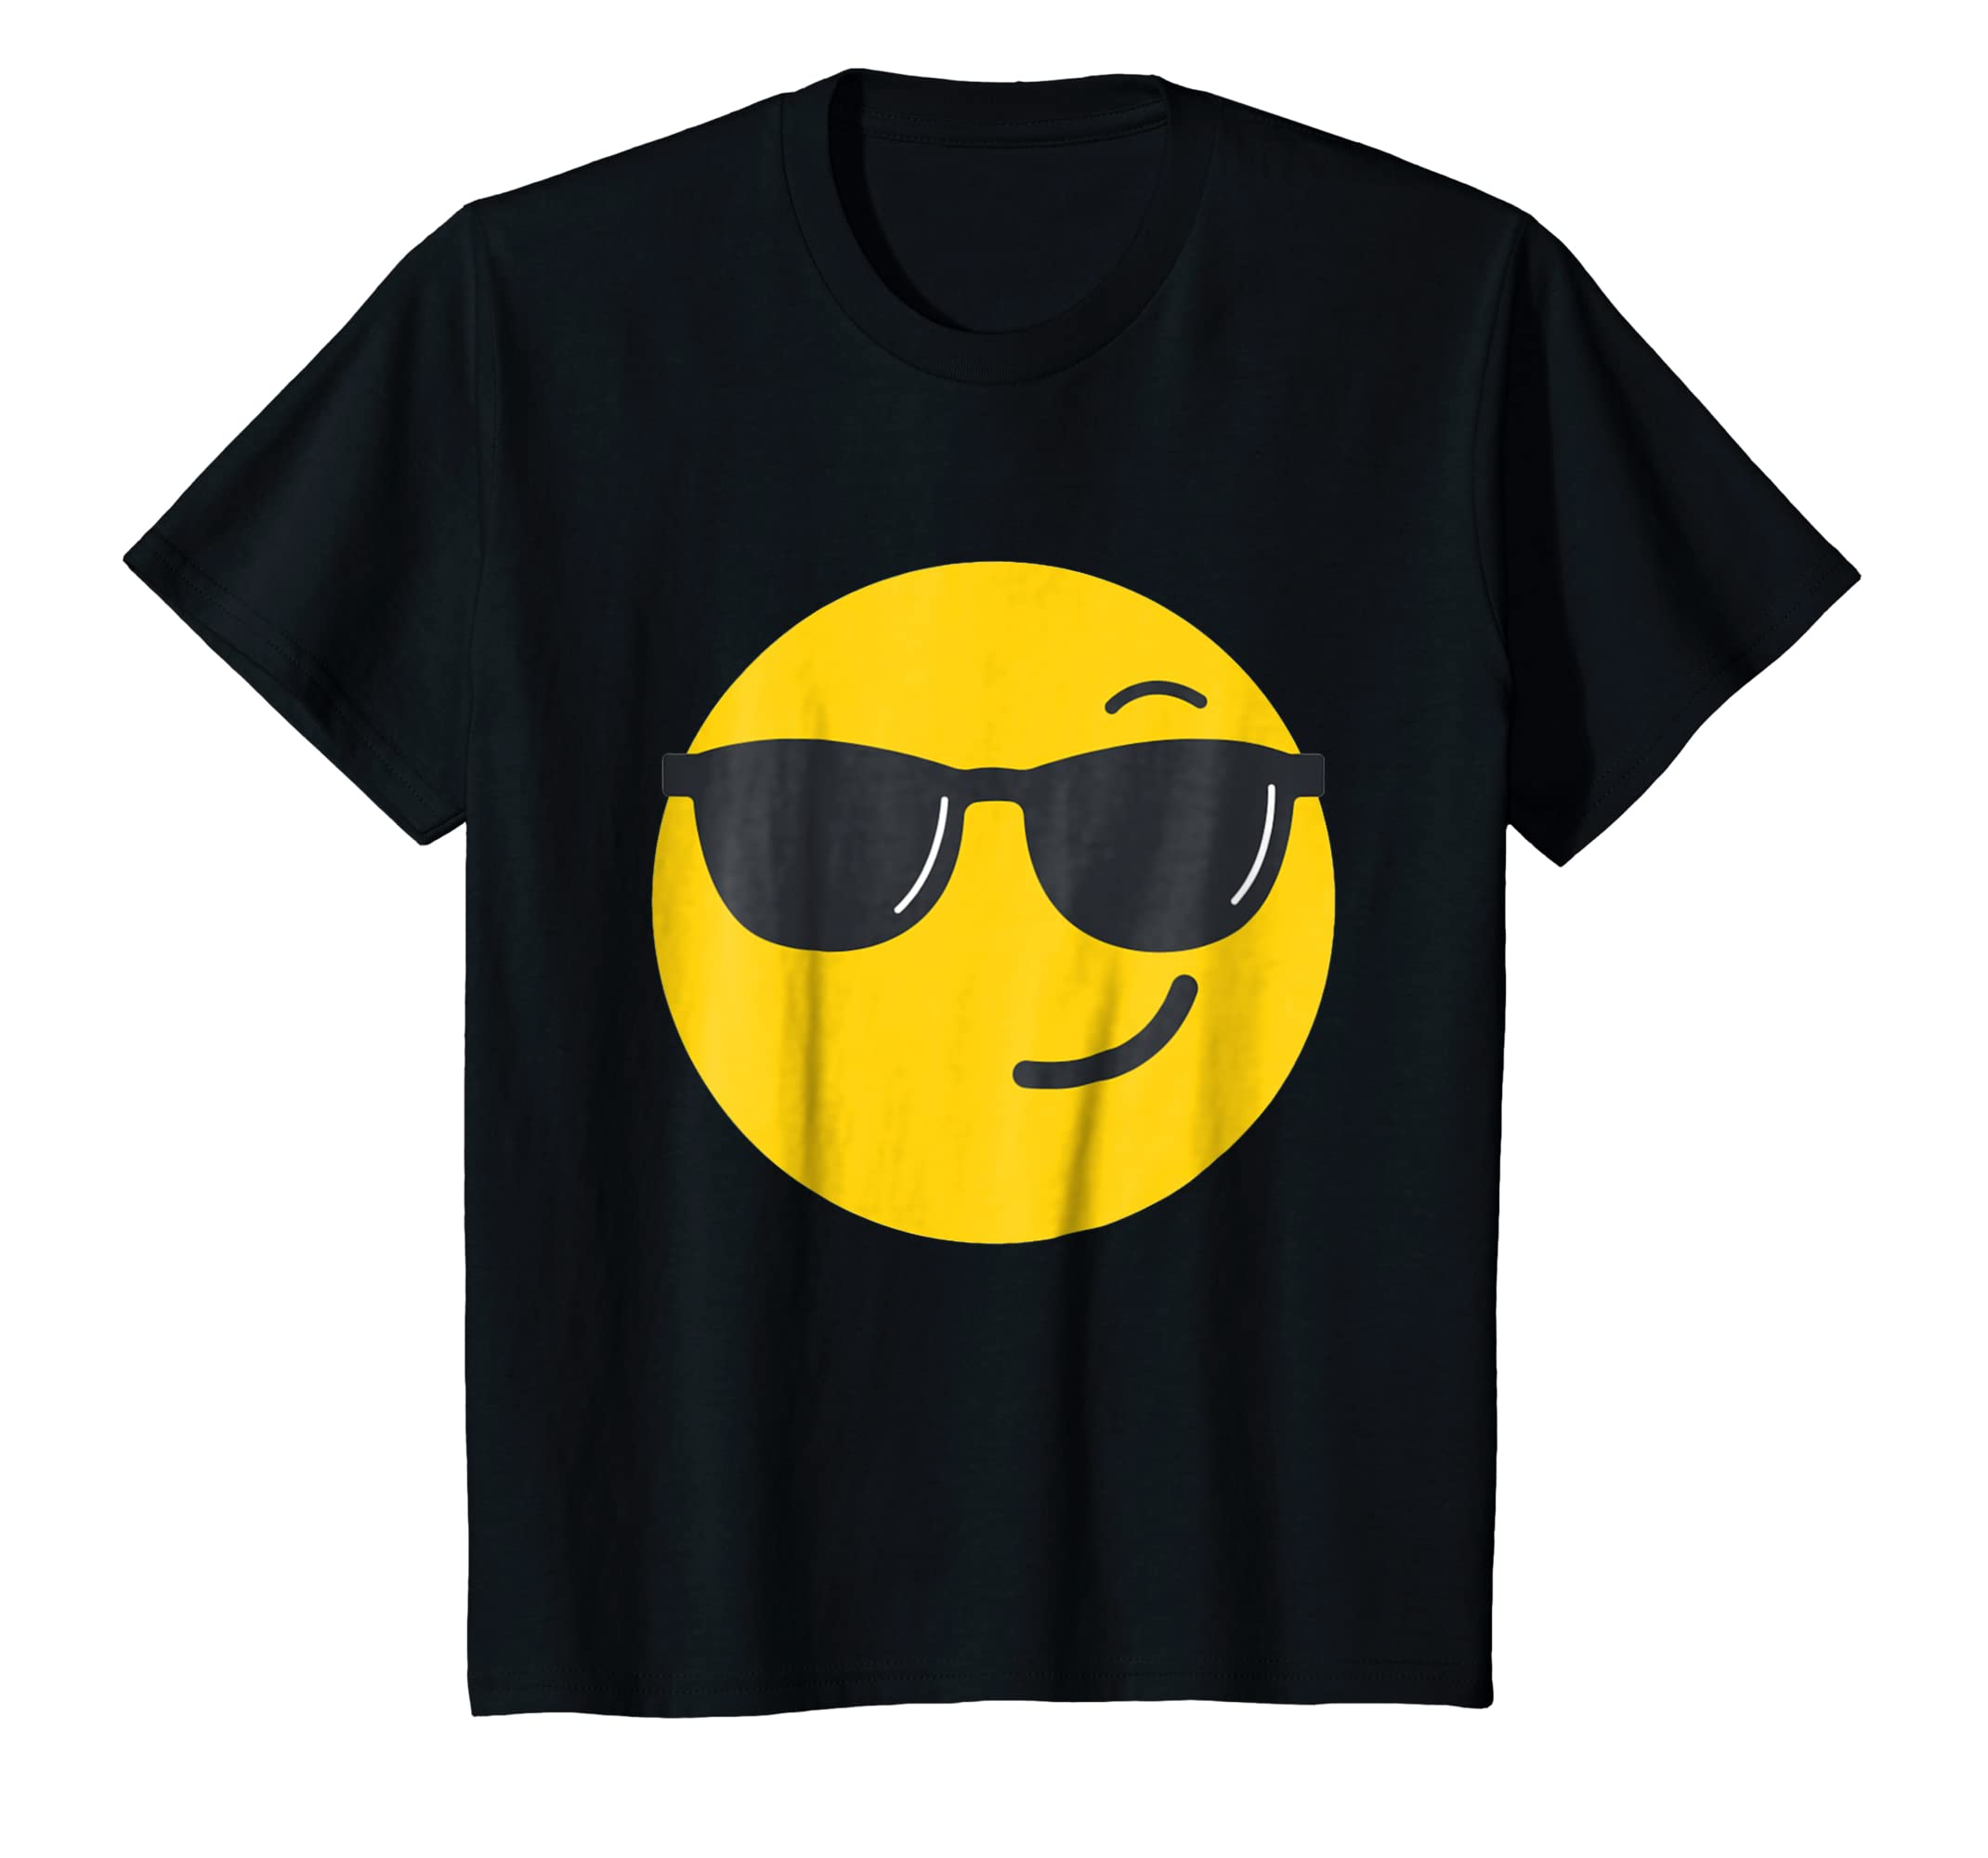 Amazon.com: Emoji Face - Sunglasses Face costume T-Shirt ...